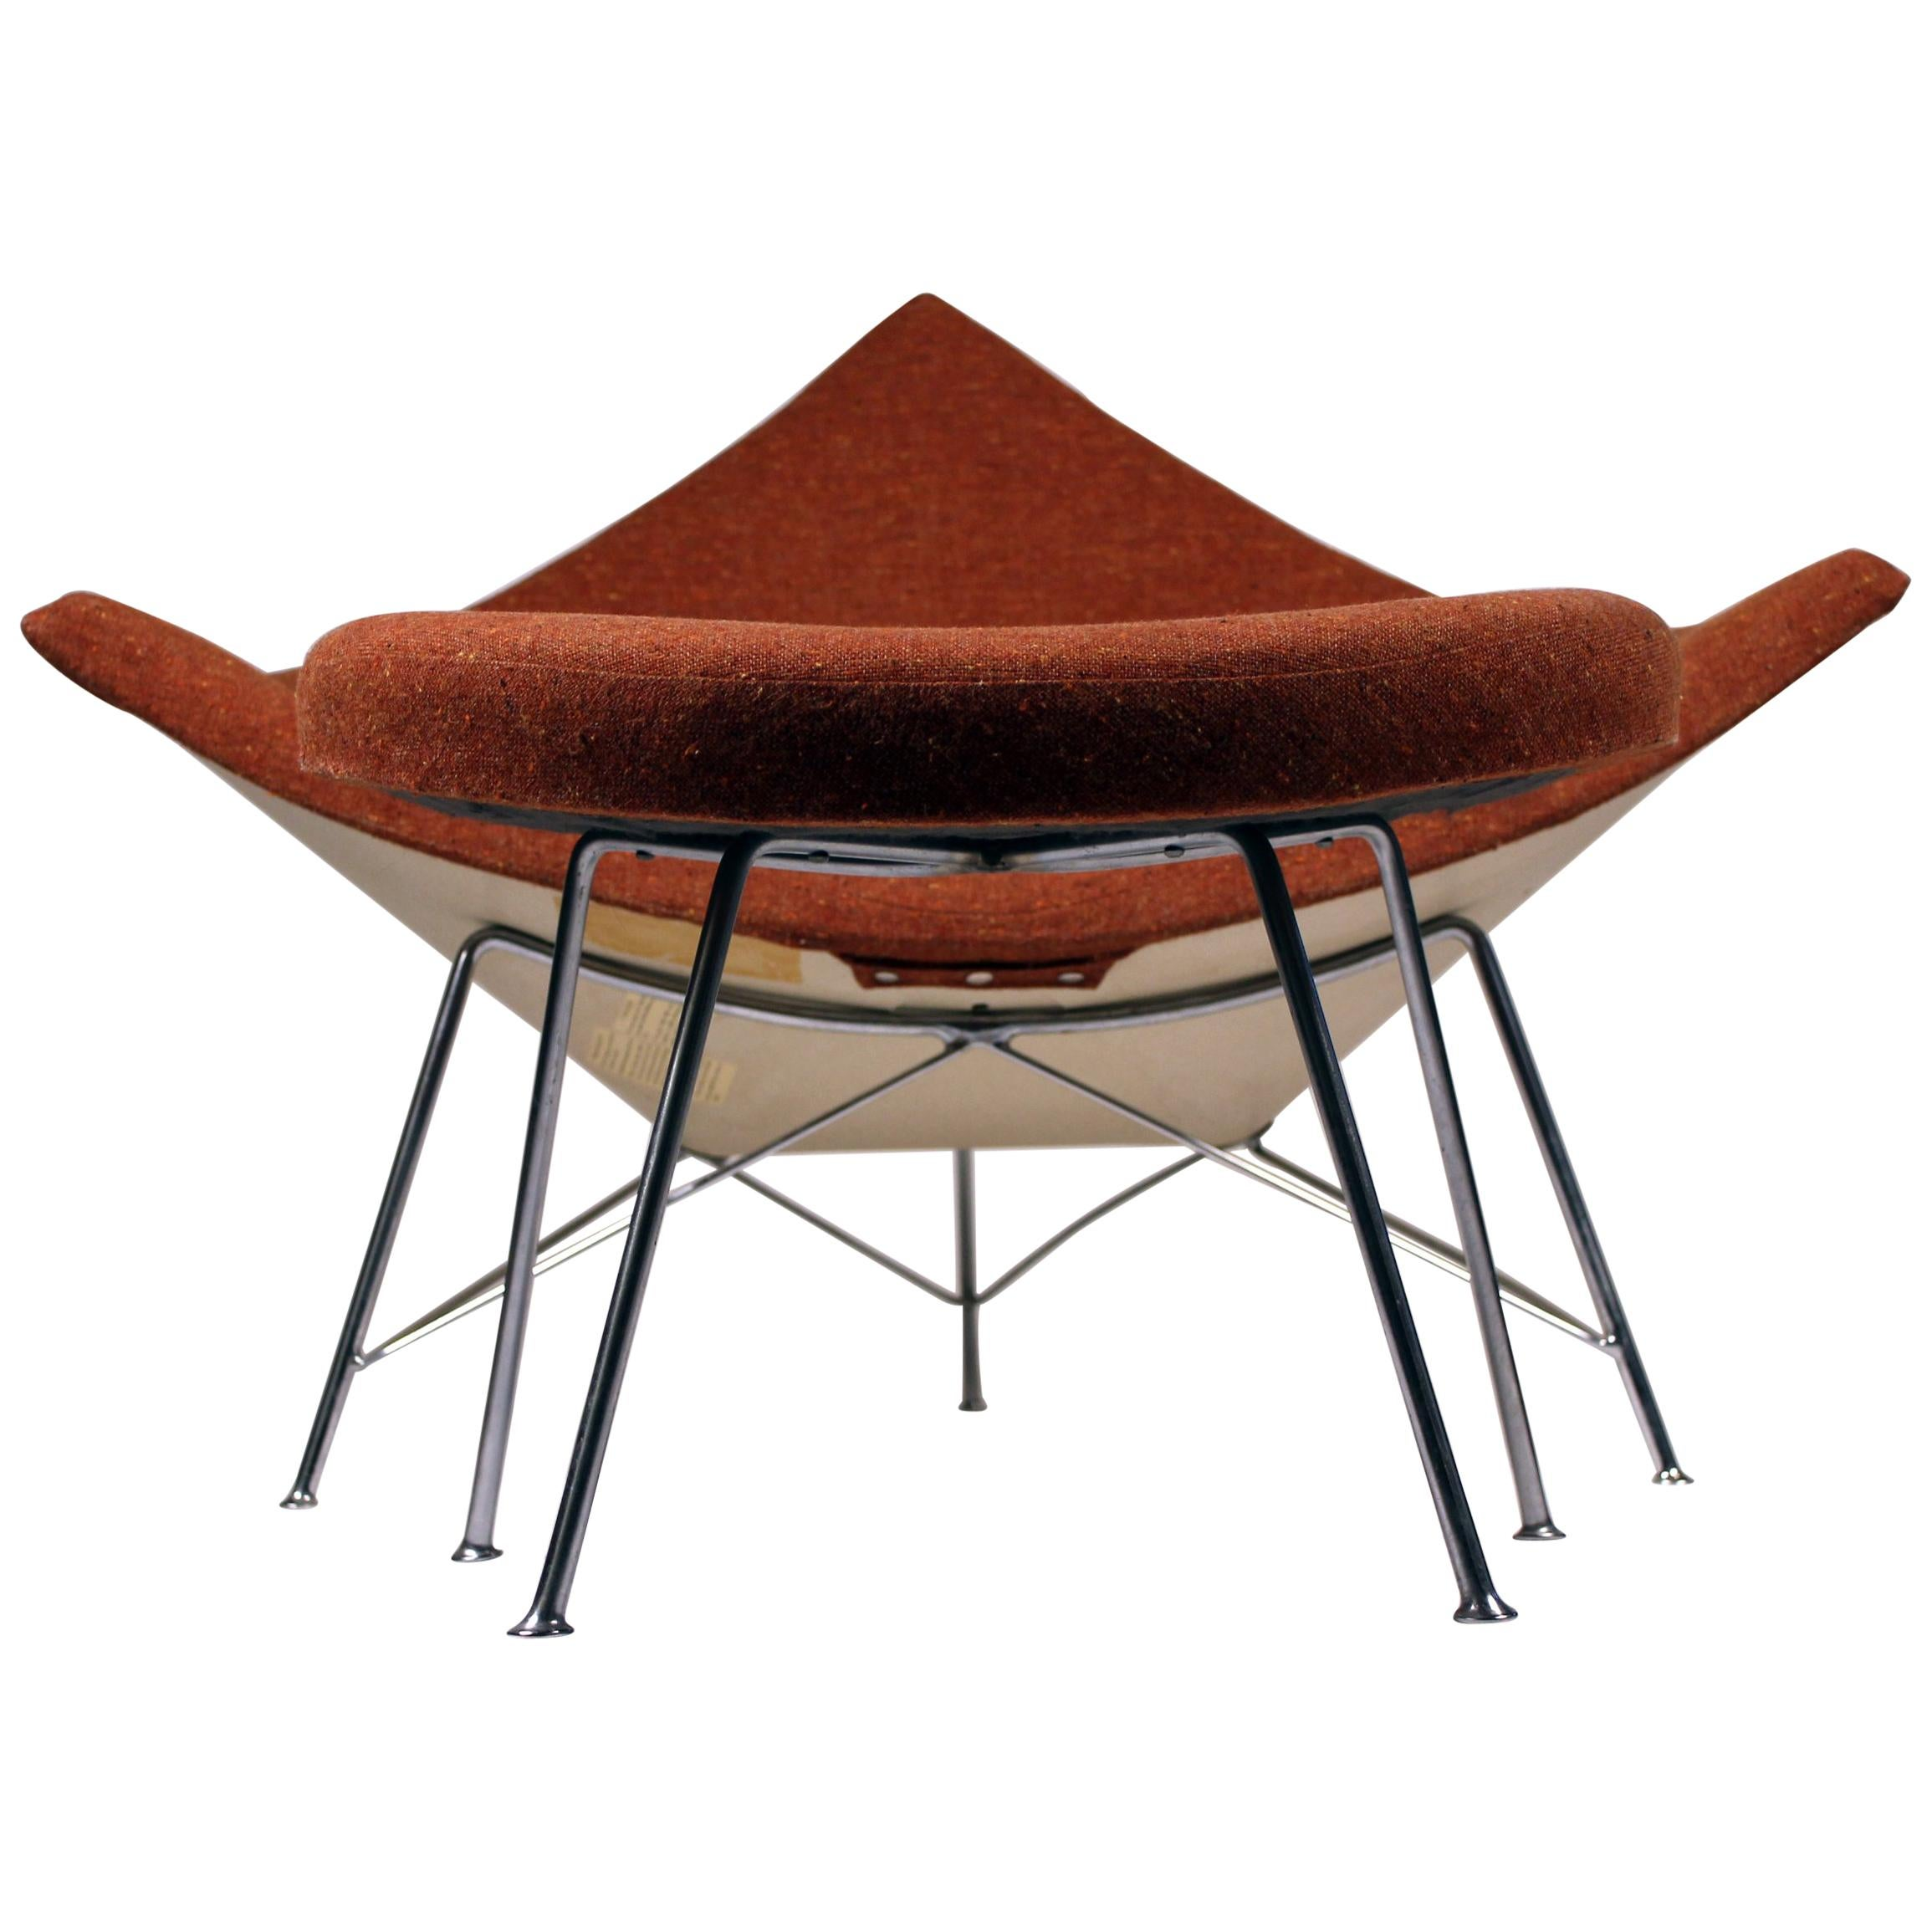 Early Coconut Chair and Ottoman by George Nelson for Herman Miller